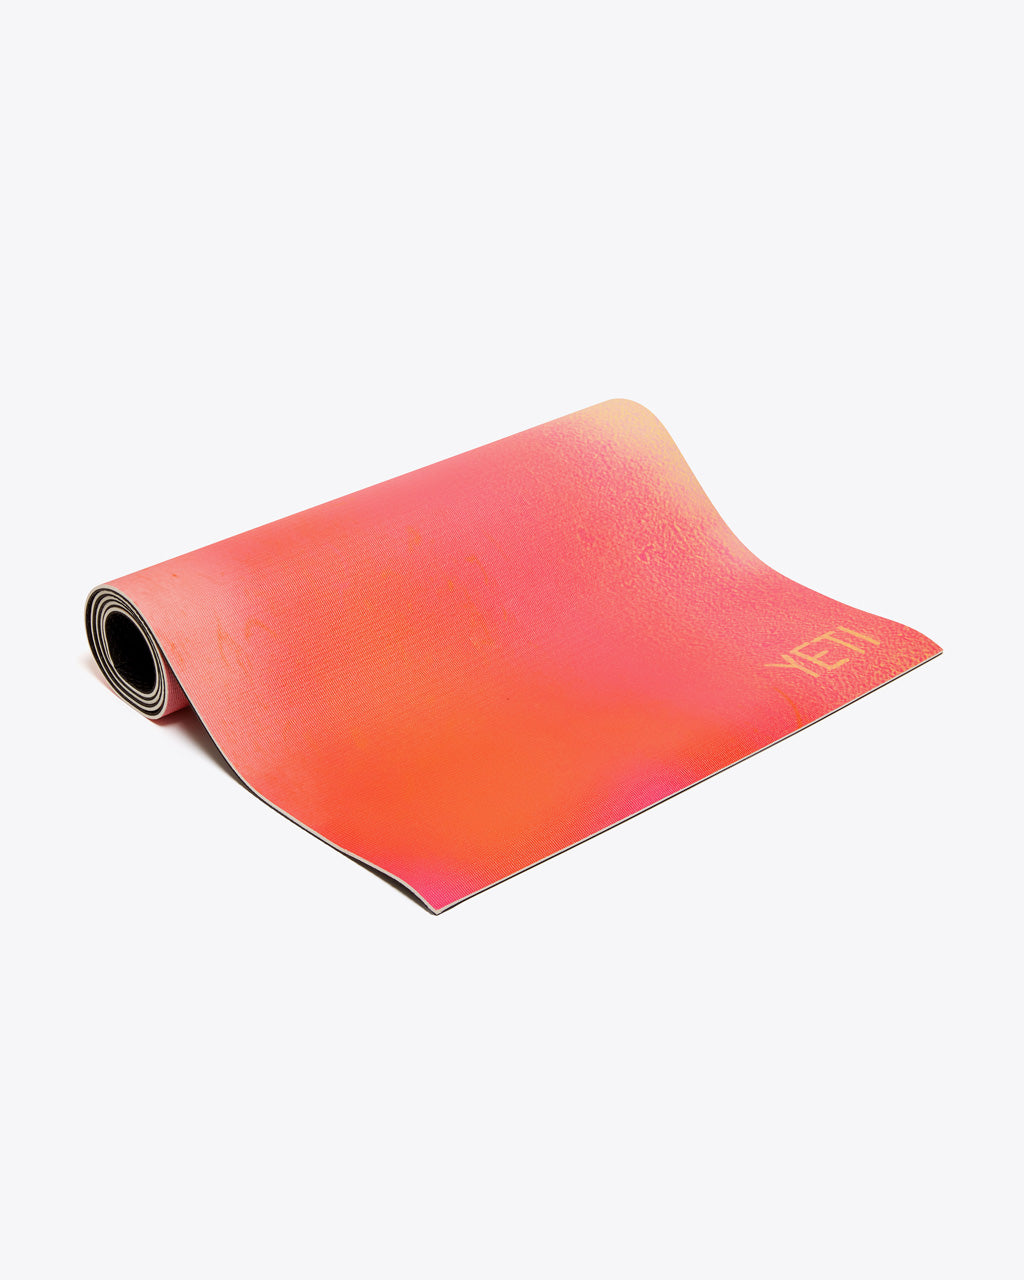 pink/red yoga mat shown almost rolled up